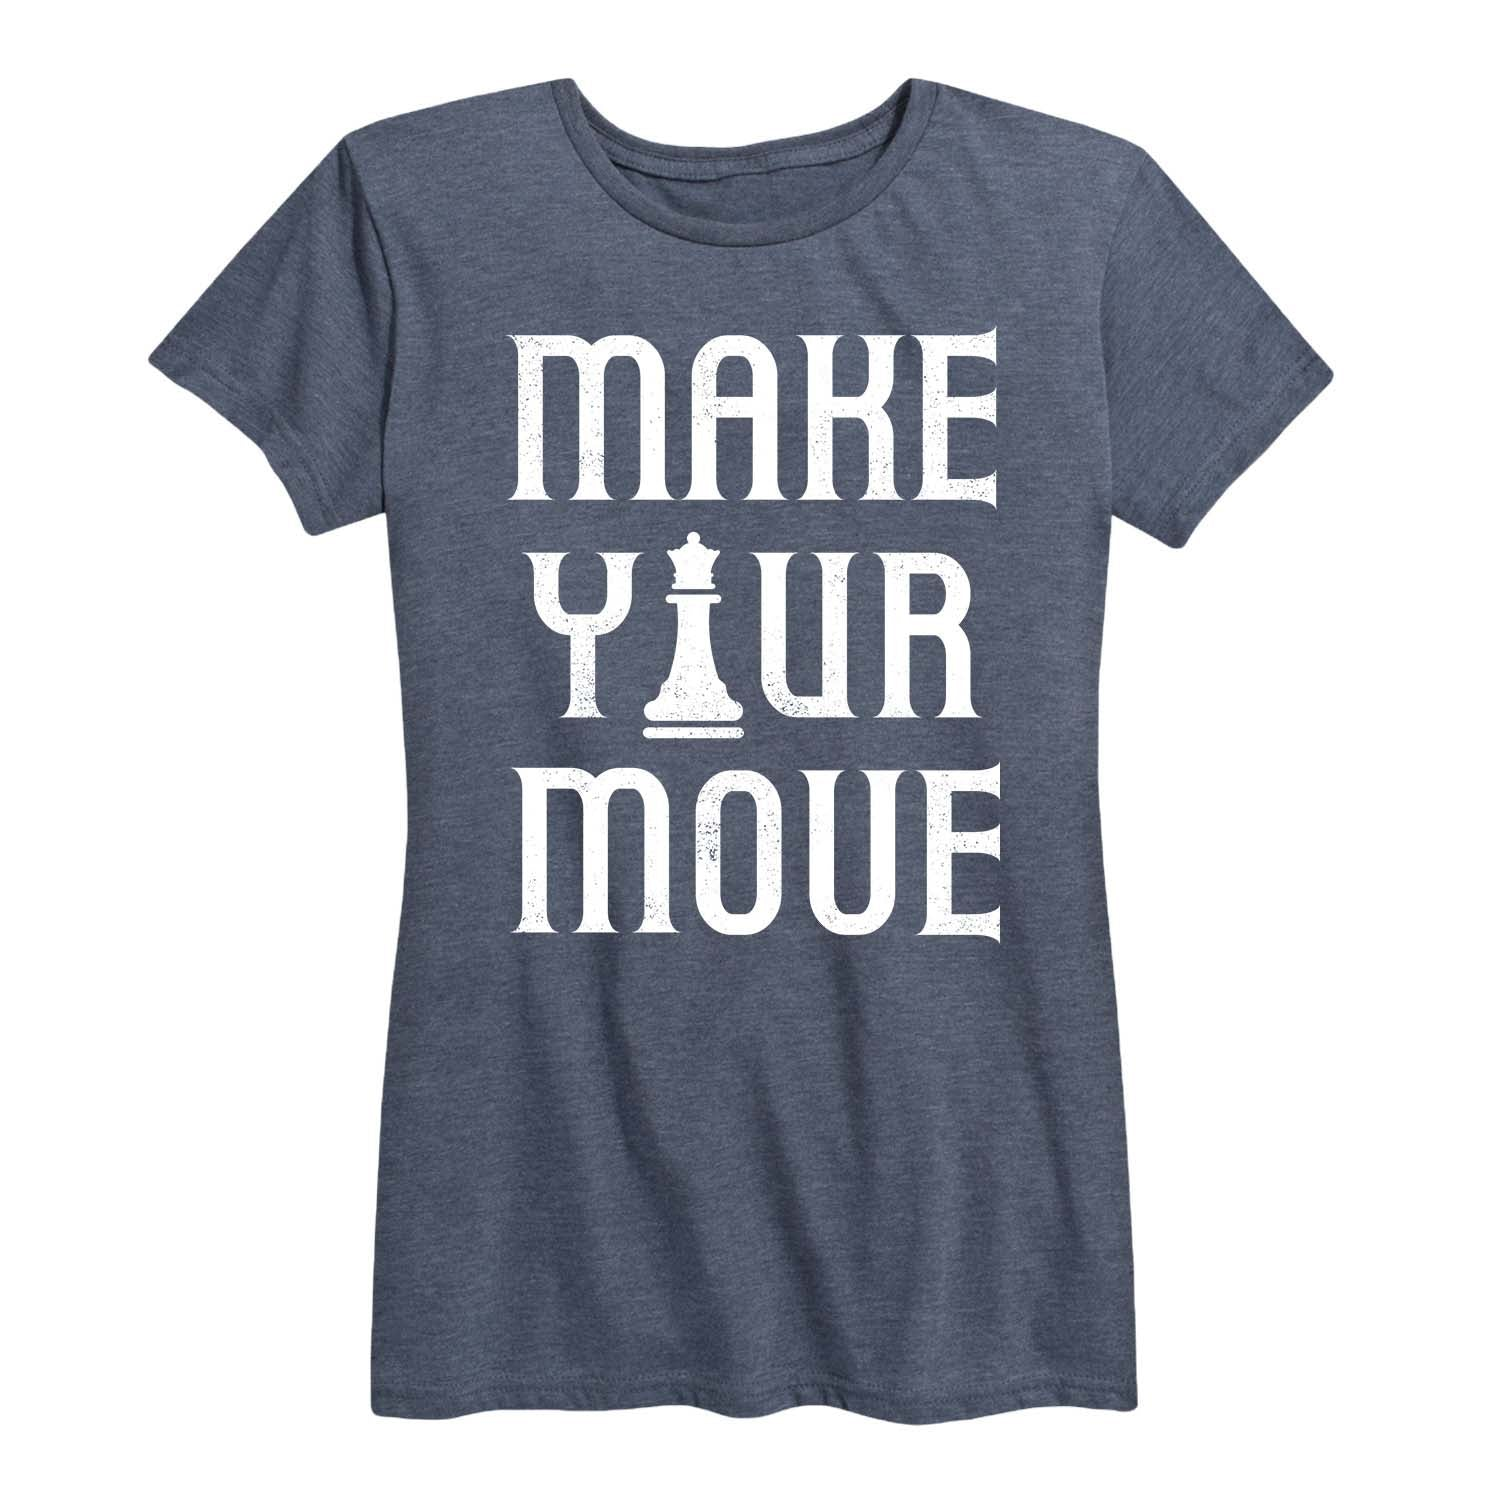 Make Your Move Chess Piece - Women's Short Sleeve T-Shirt